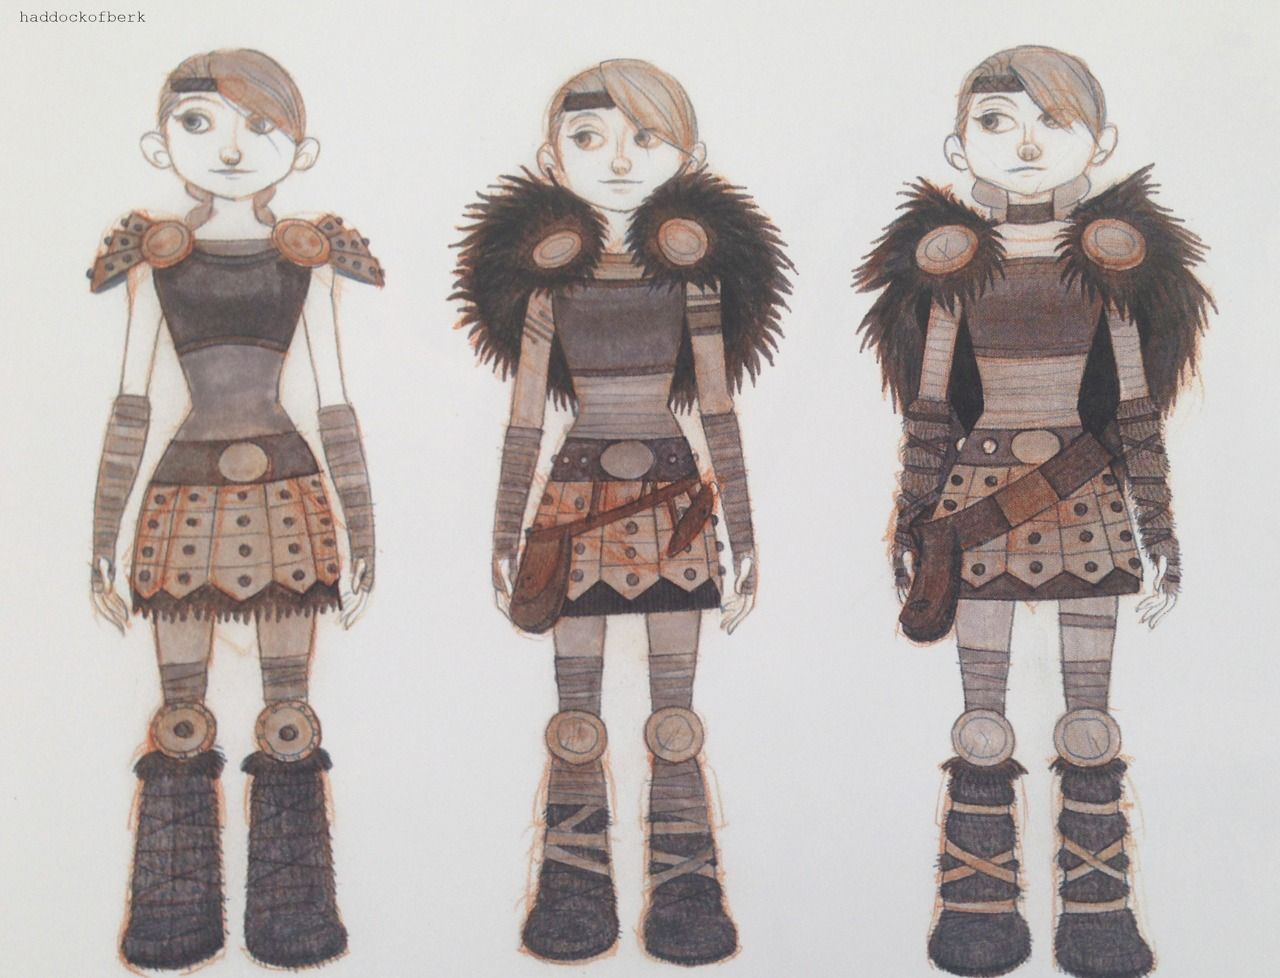 How to train your dragon 2 concept art character design how to train your dragon 2 concept art ccuart Gallery